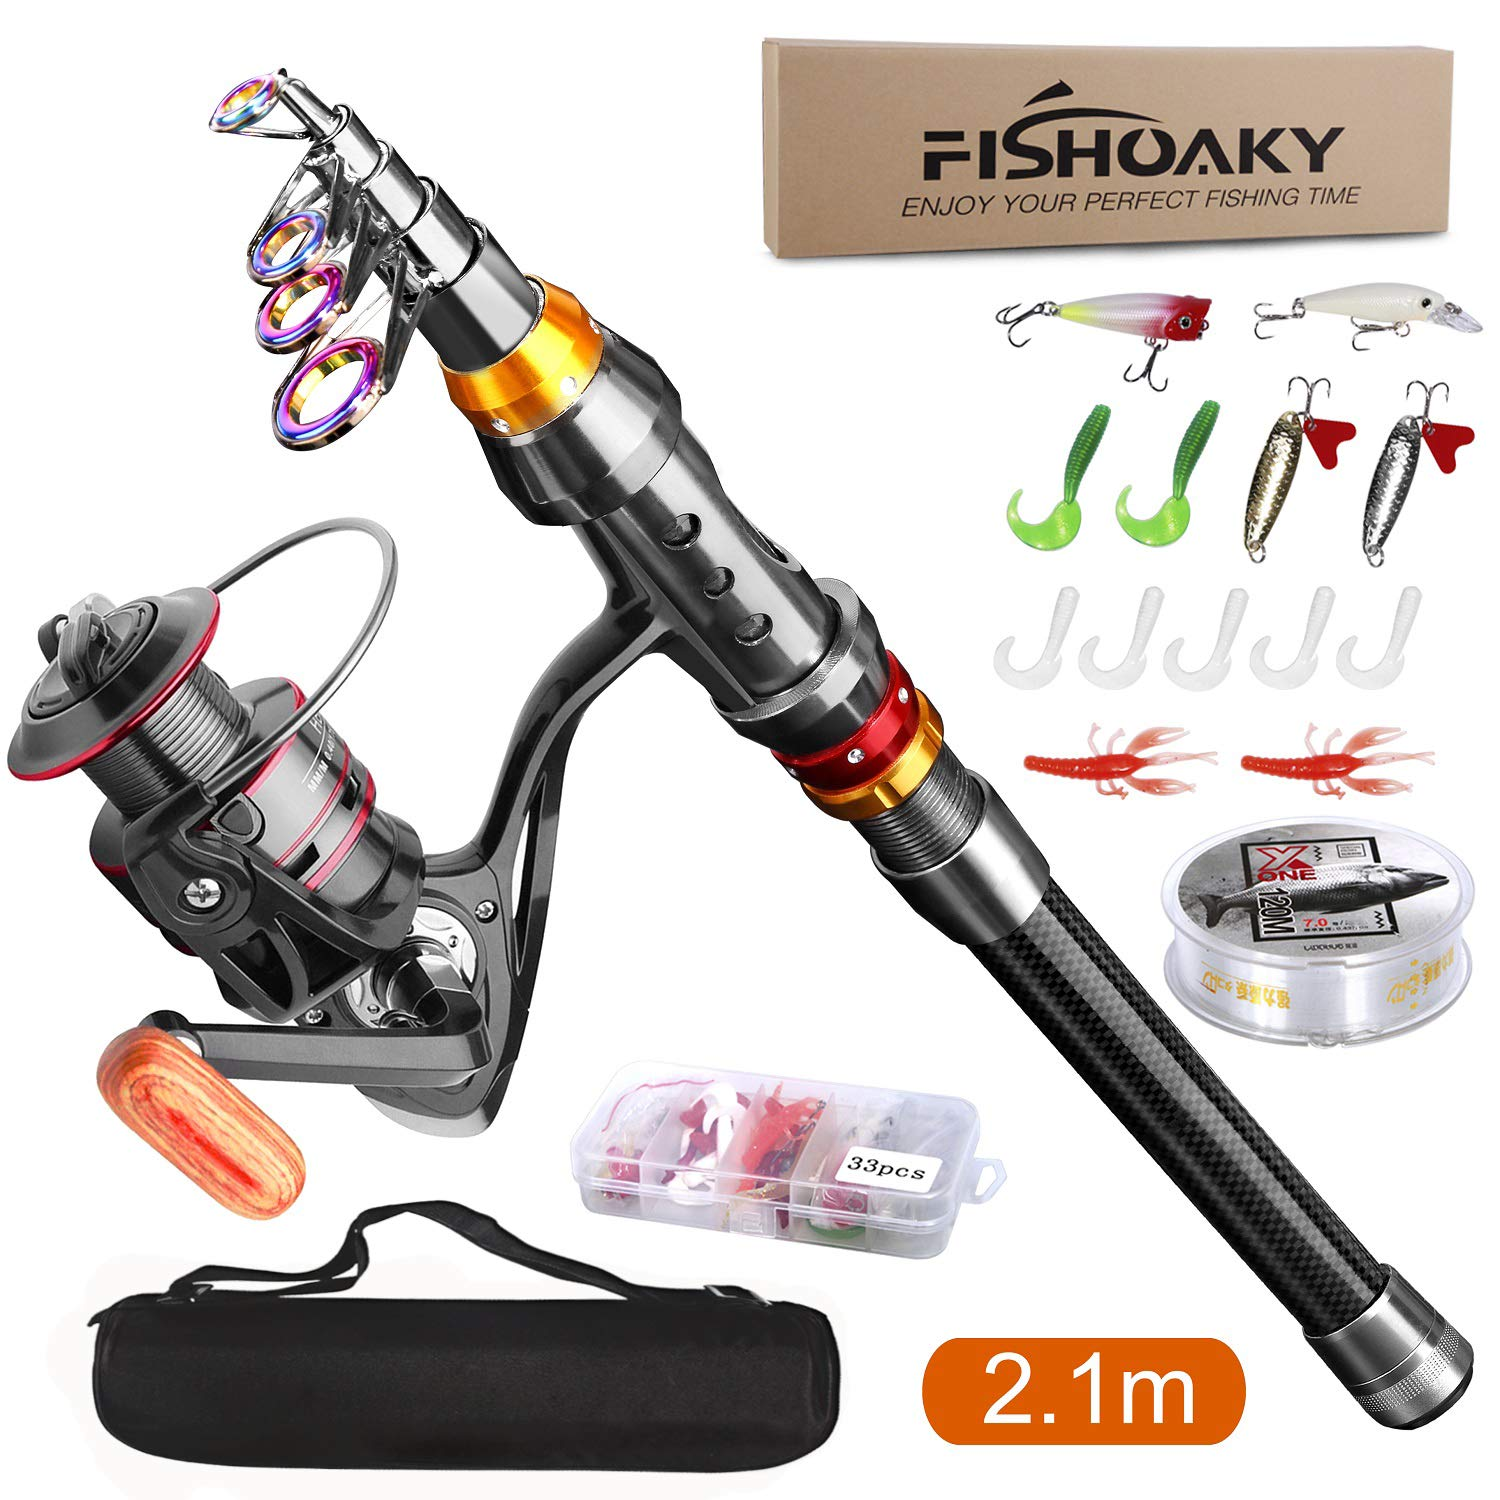 FISHOAKY Fishing Rod kit, Carbon Fiber Telescopic Fishing Pole and Reel Combo with Line Lures Tackle Hooks Reel Carrier Bag for Adults Travel Saltwater Freshwater